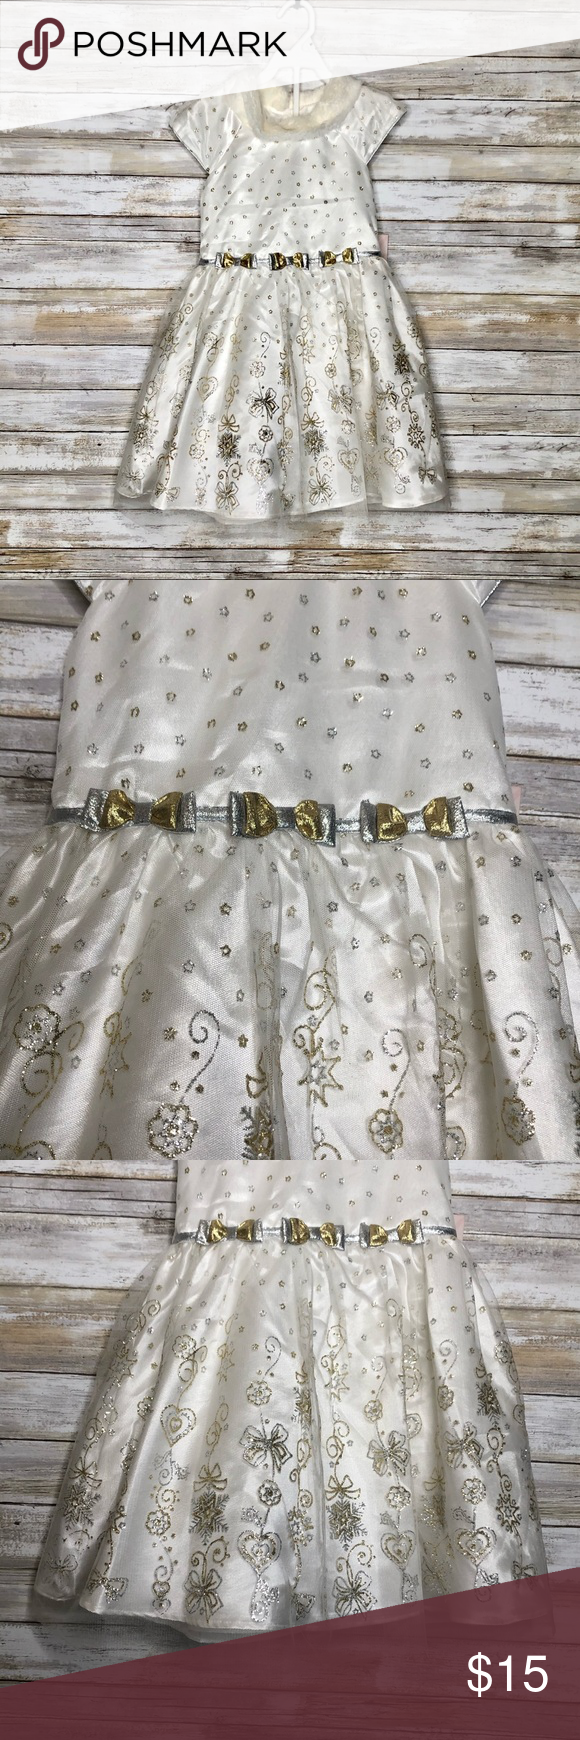 Nwt 5t Party Dress Toddler Party Dress Beautiful Party Dresses Party Dress [ 1740 x 580 Pixel ]